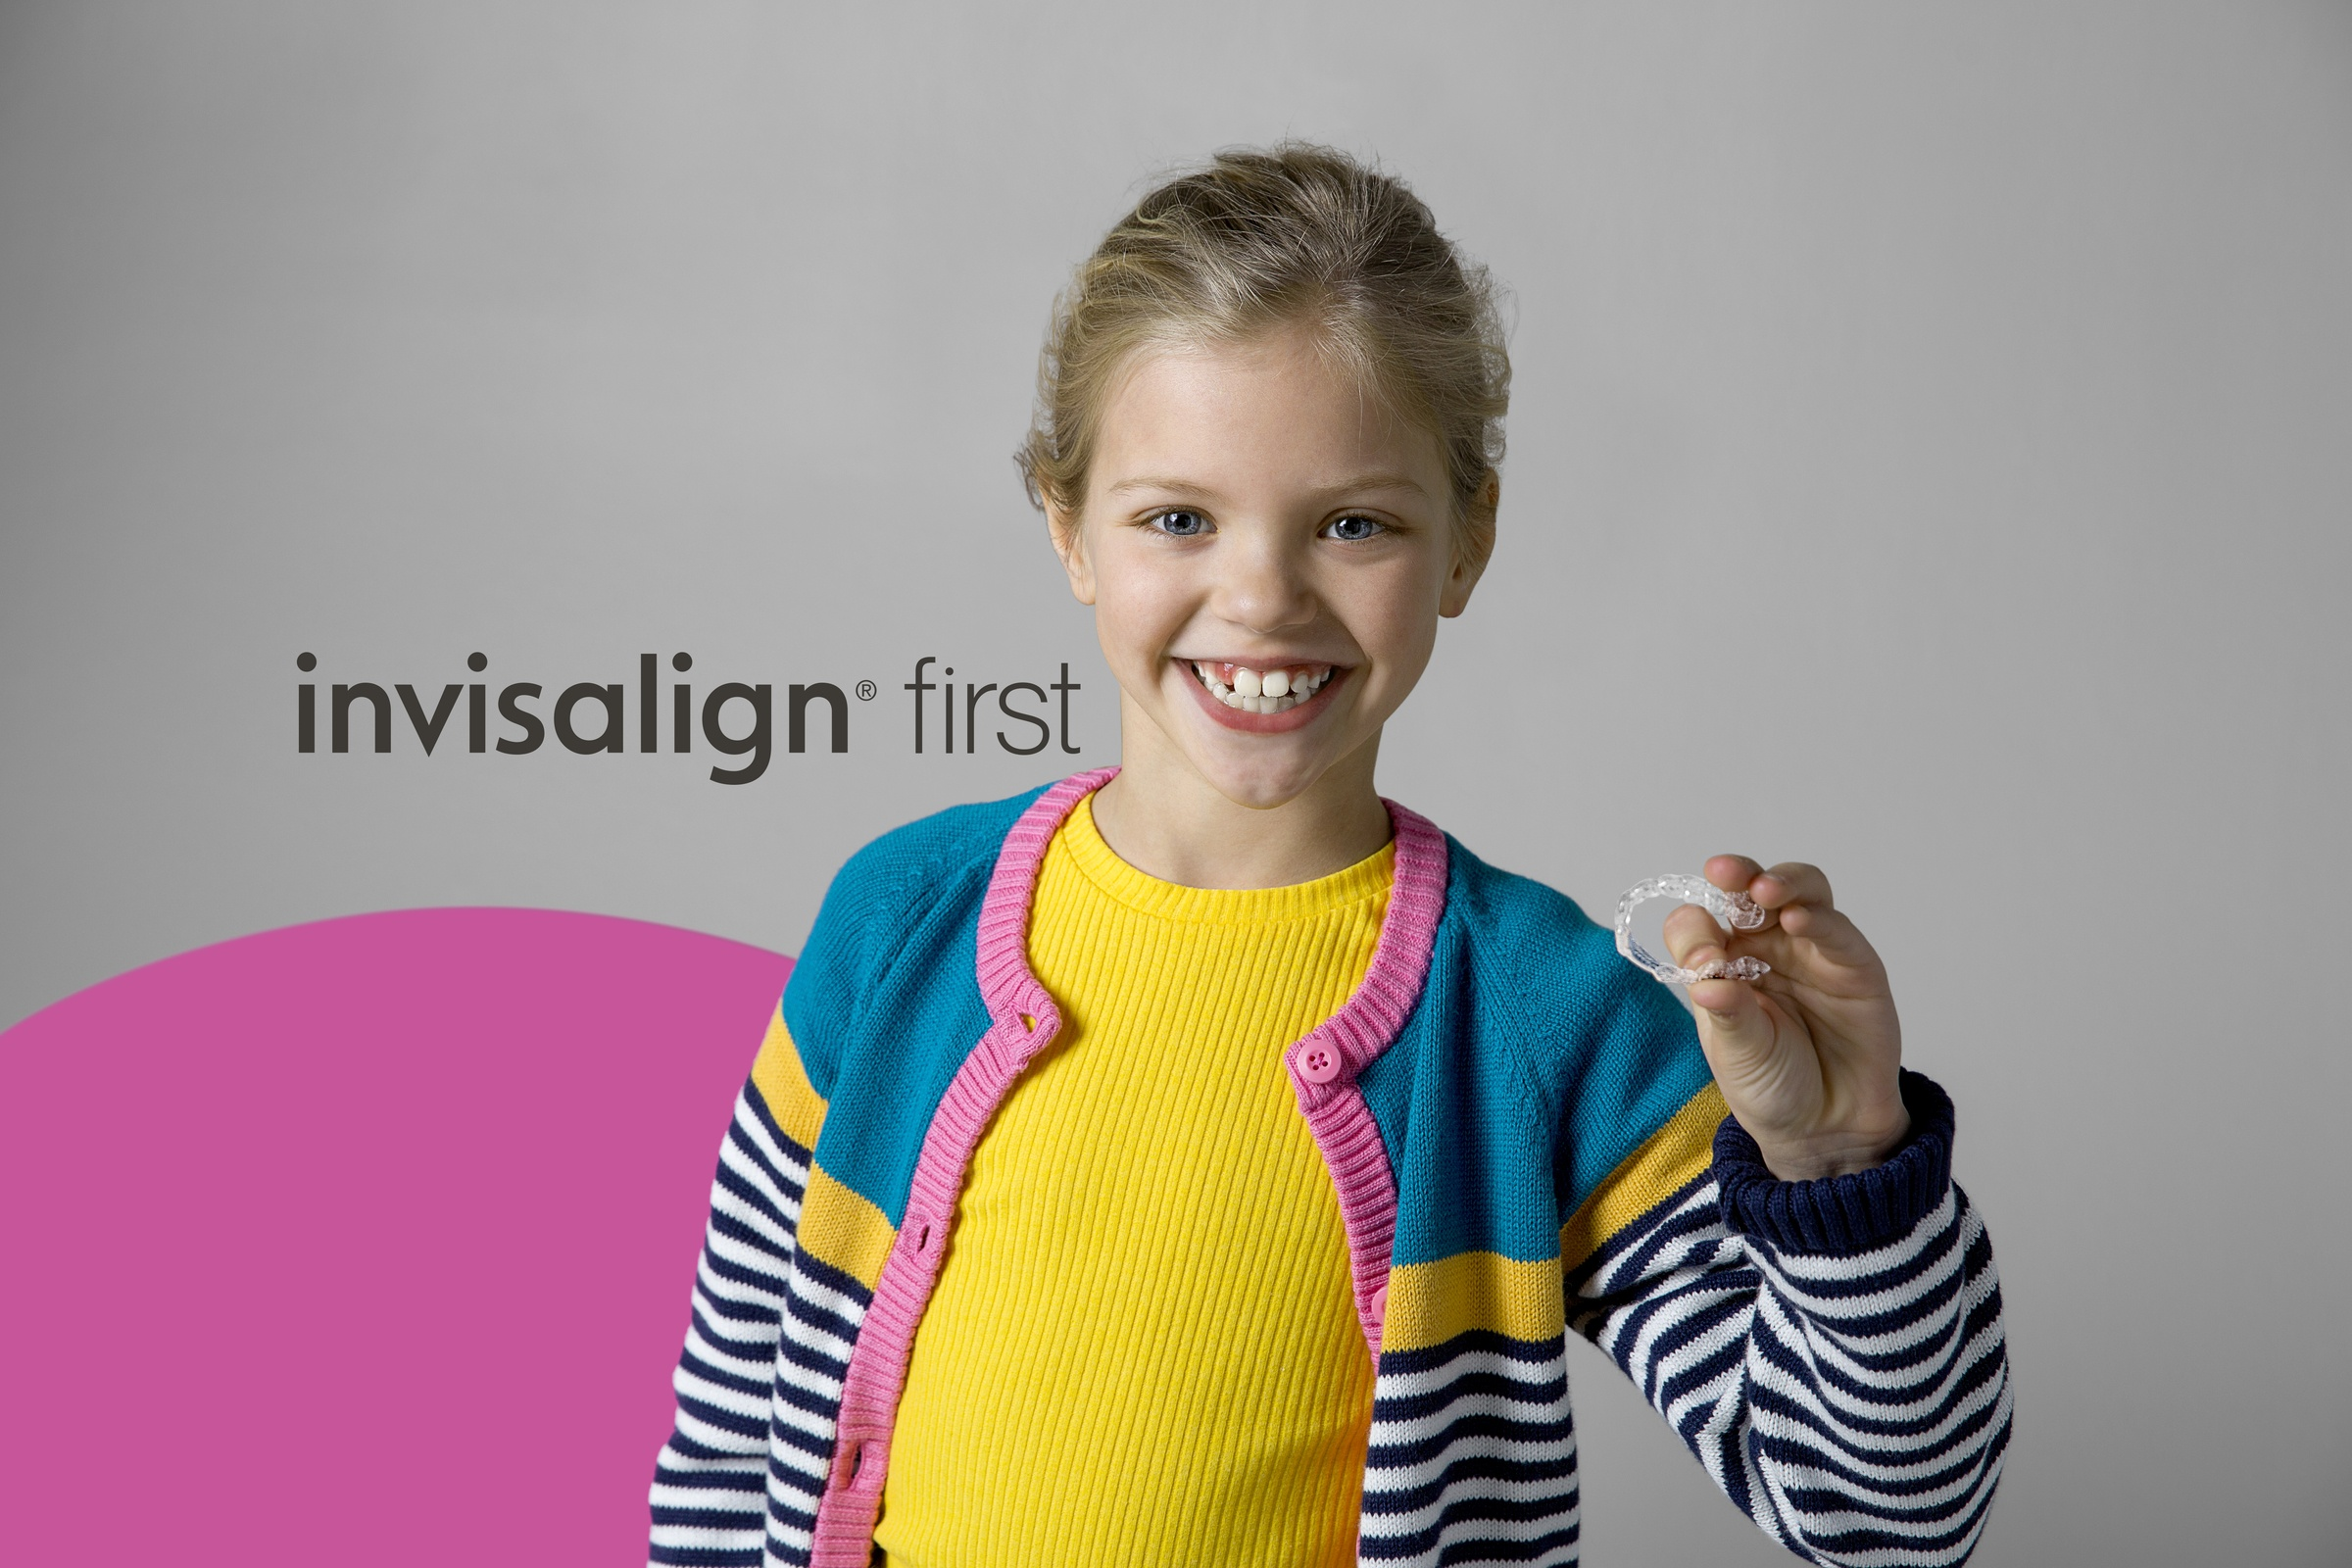 invisalign-first-clinica-dental rocio montero utrera